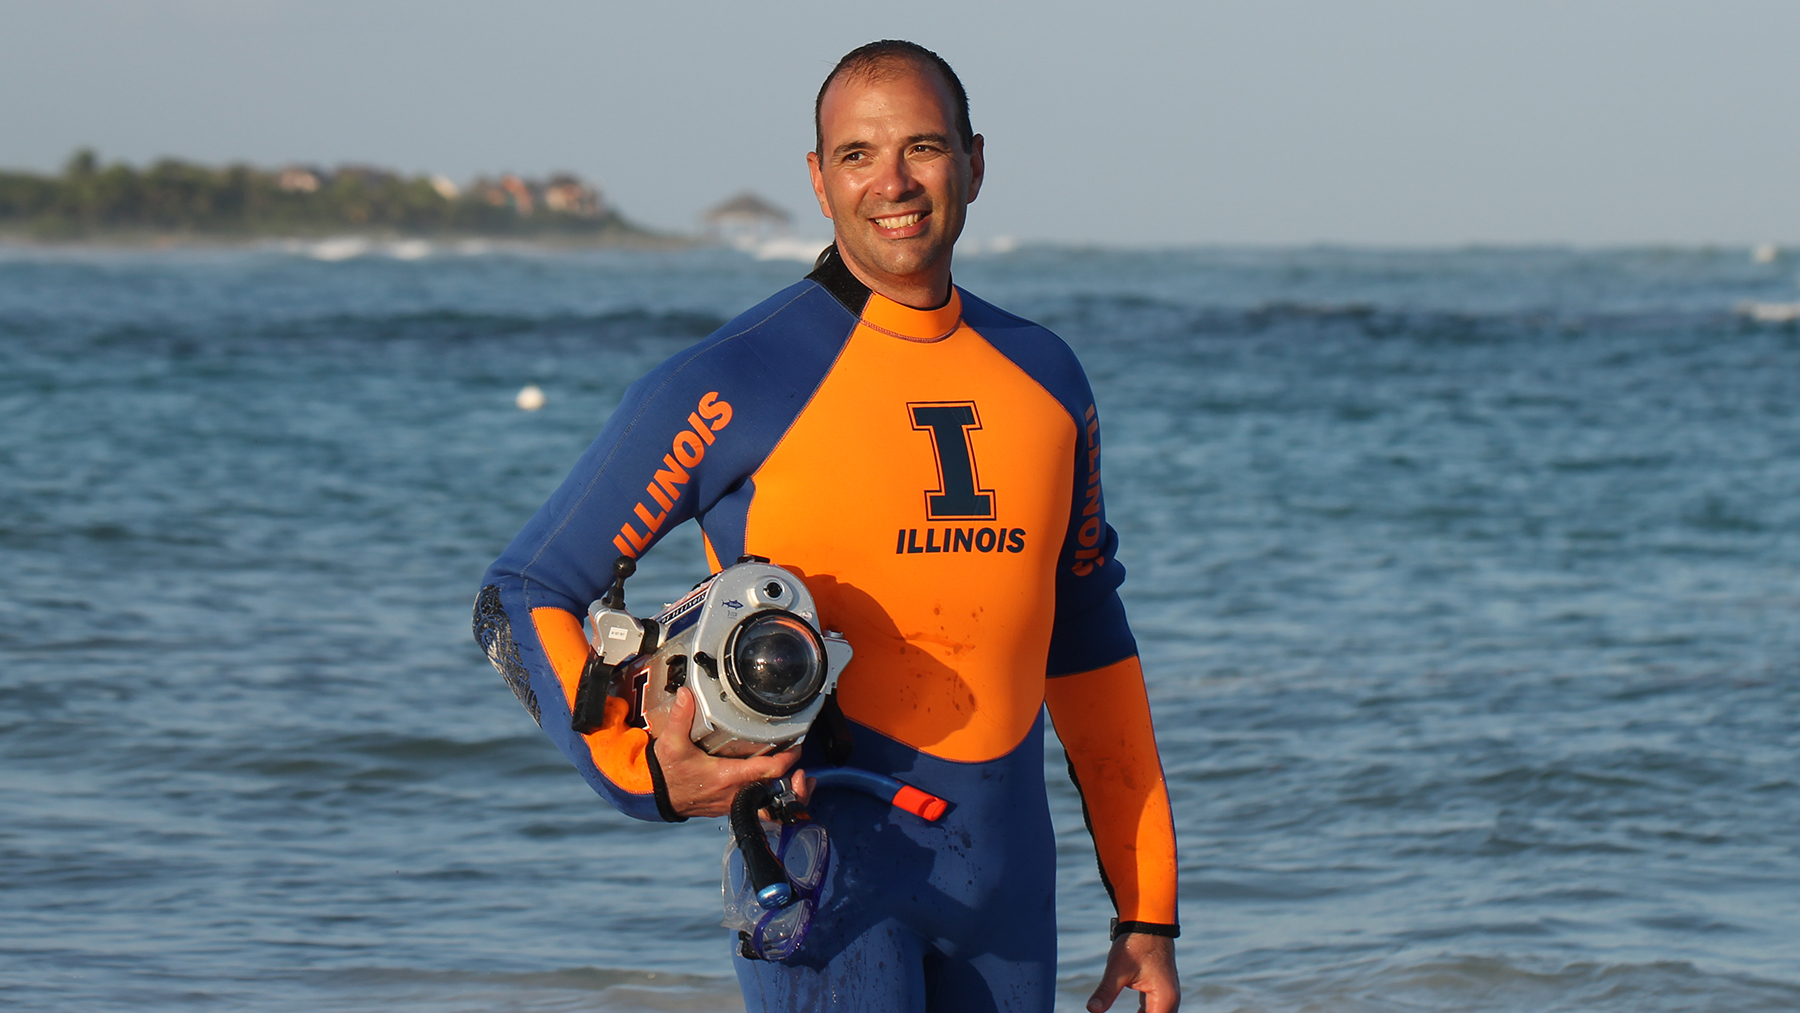 Professor Victor Gruev in a wetsuit. Photo courtesy of Victor Gruev